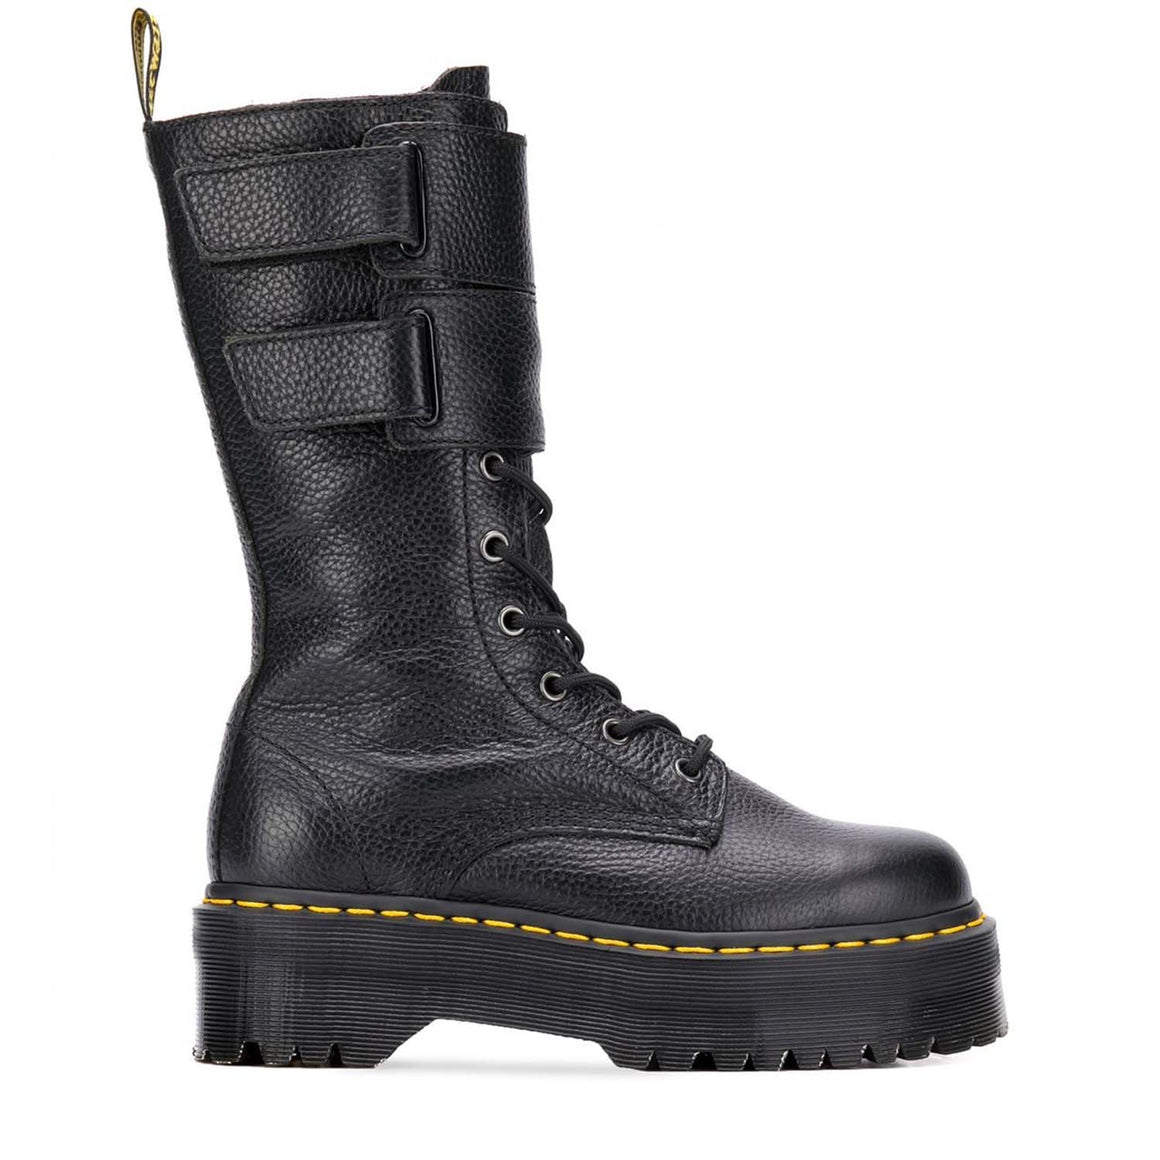 DR. MARTENS JAGGER THIGH HIGH BOOTS